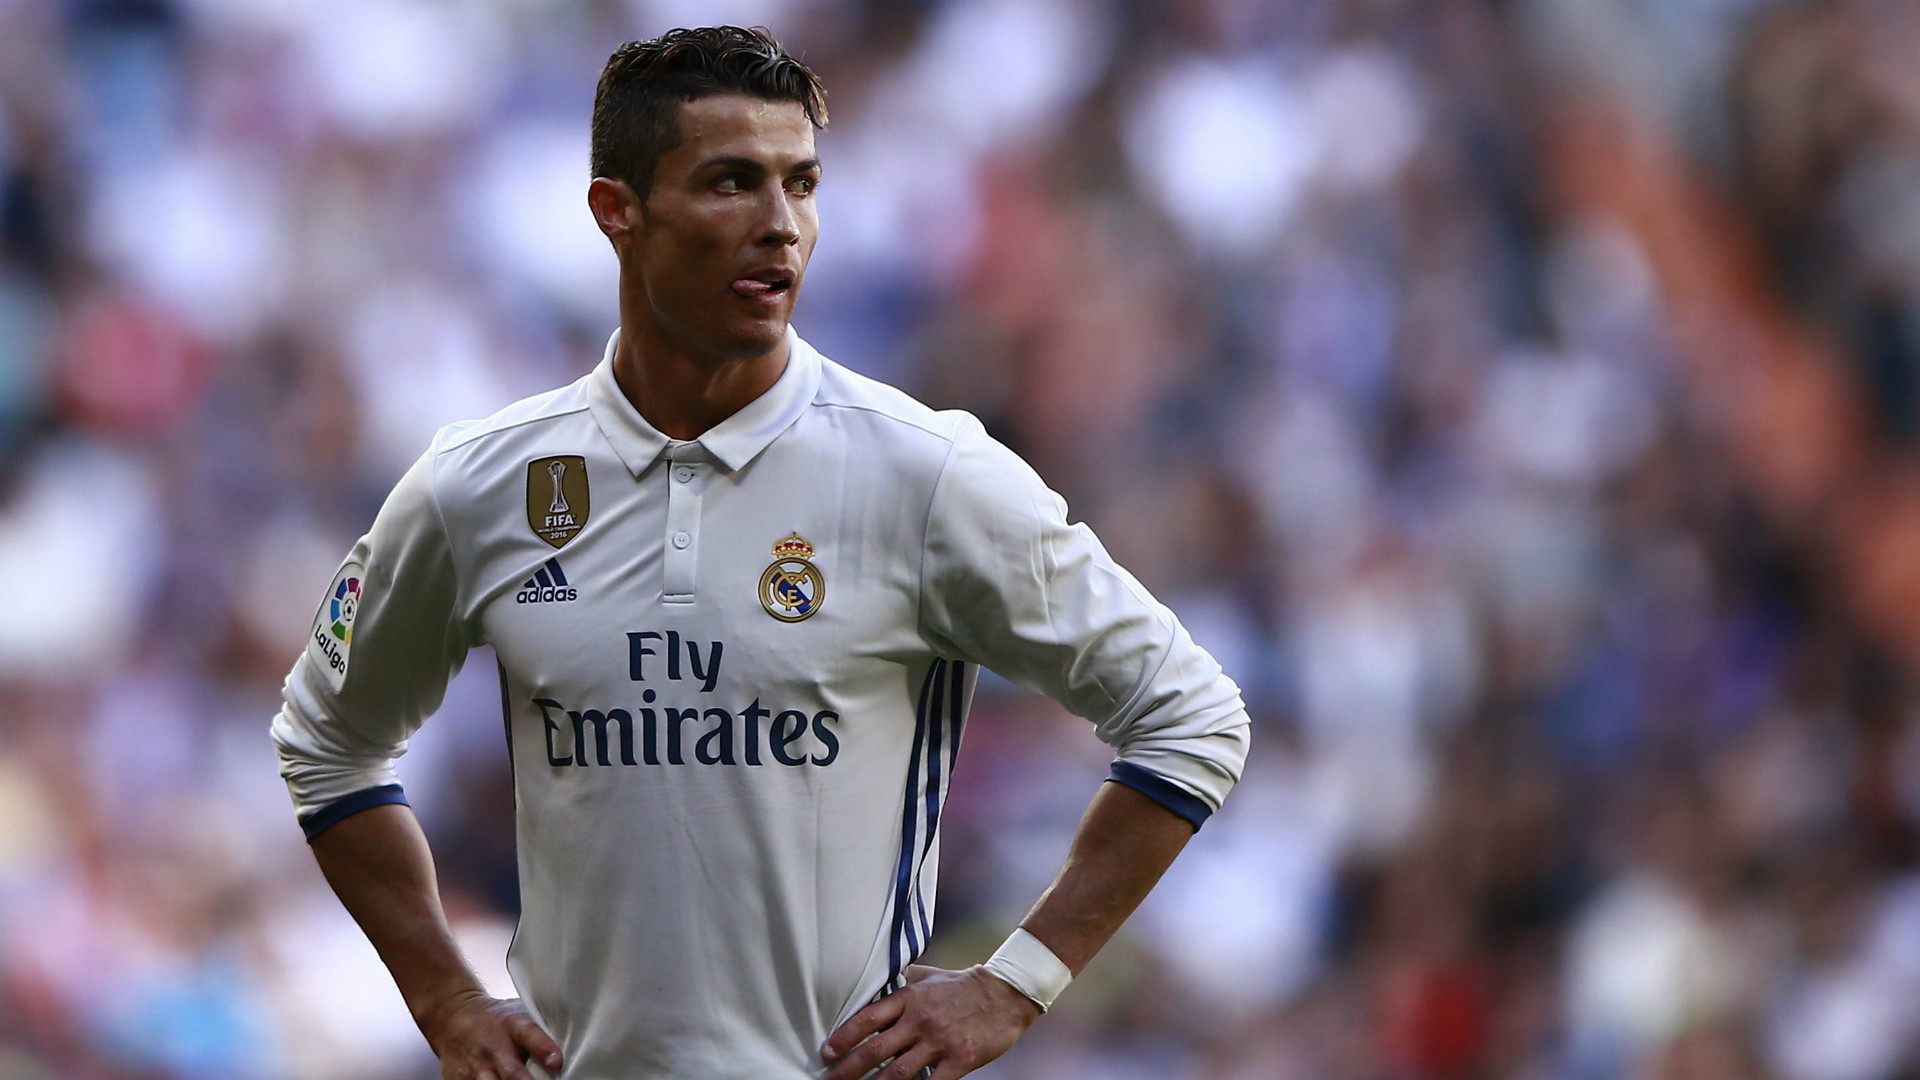 Cristiano ronaldo 2018 wallpapers 74 pictures - Download cr7 photos ...